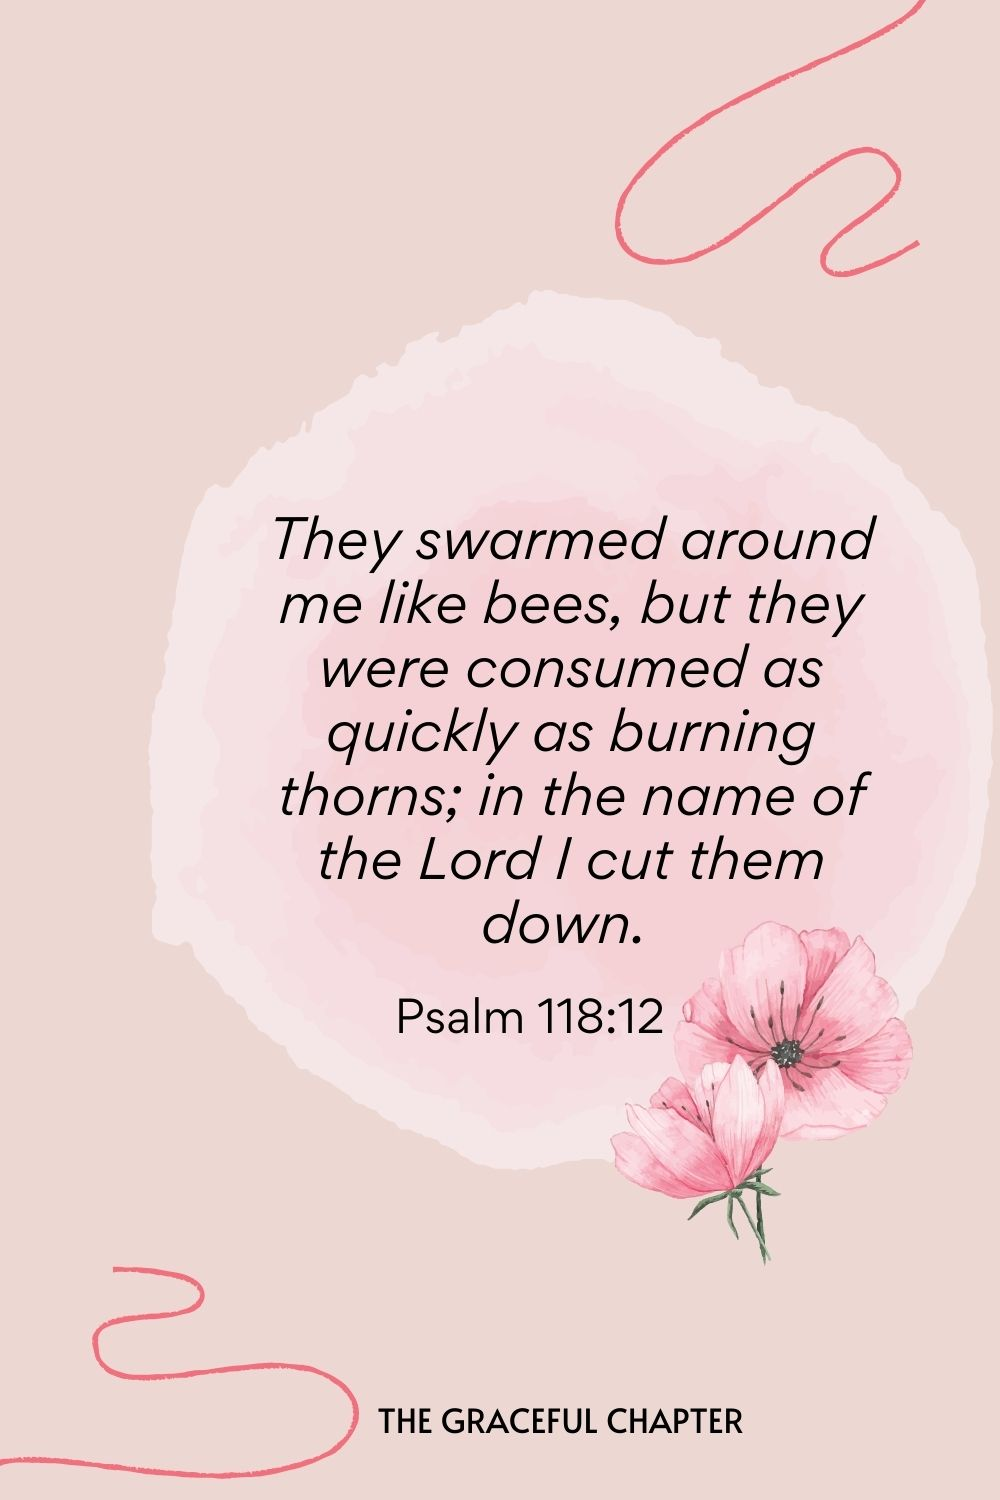 They swarmed around me like bees, but they were consumed as quickly as burning thorns; in the name of the Lord I cut them down.  Psalm 118:12